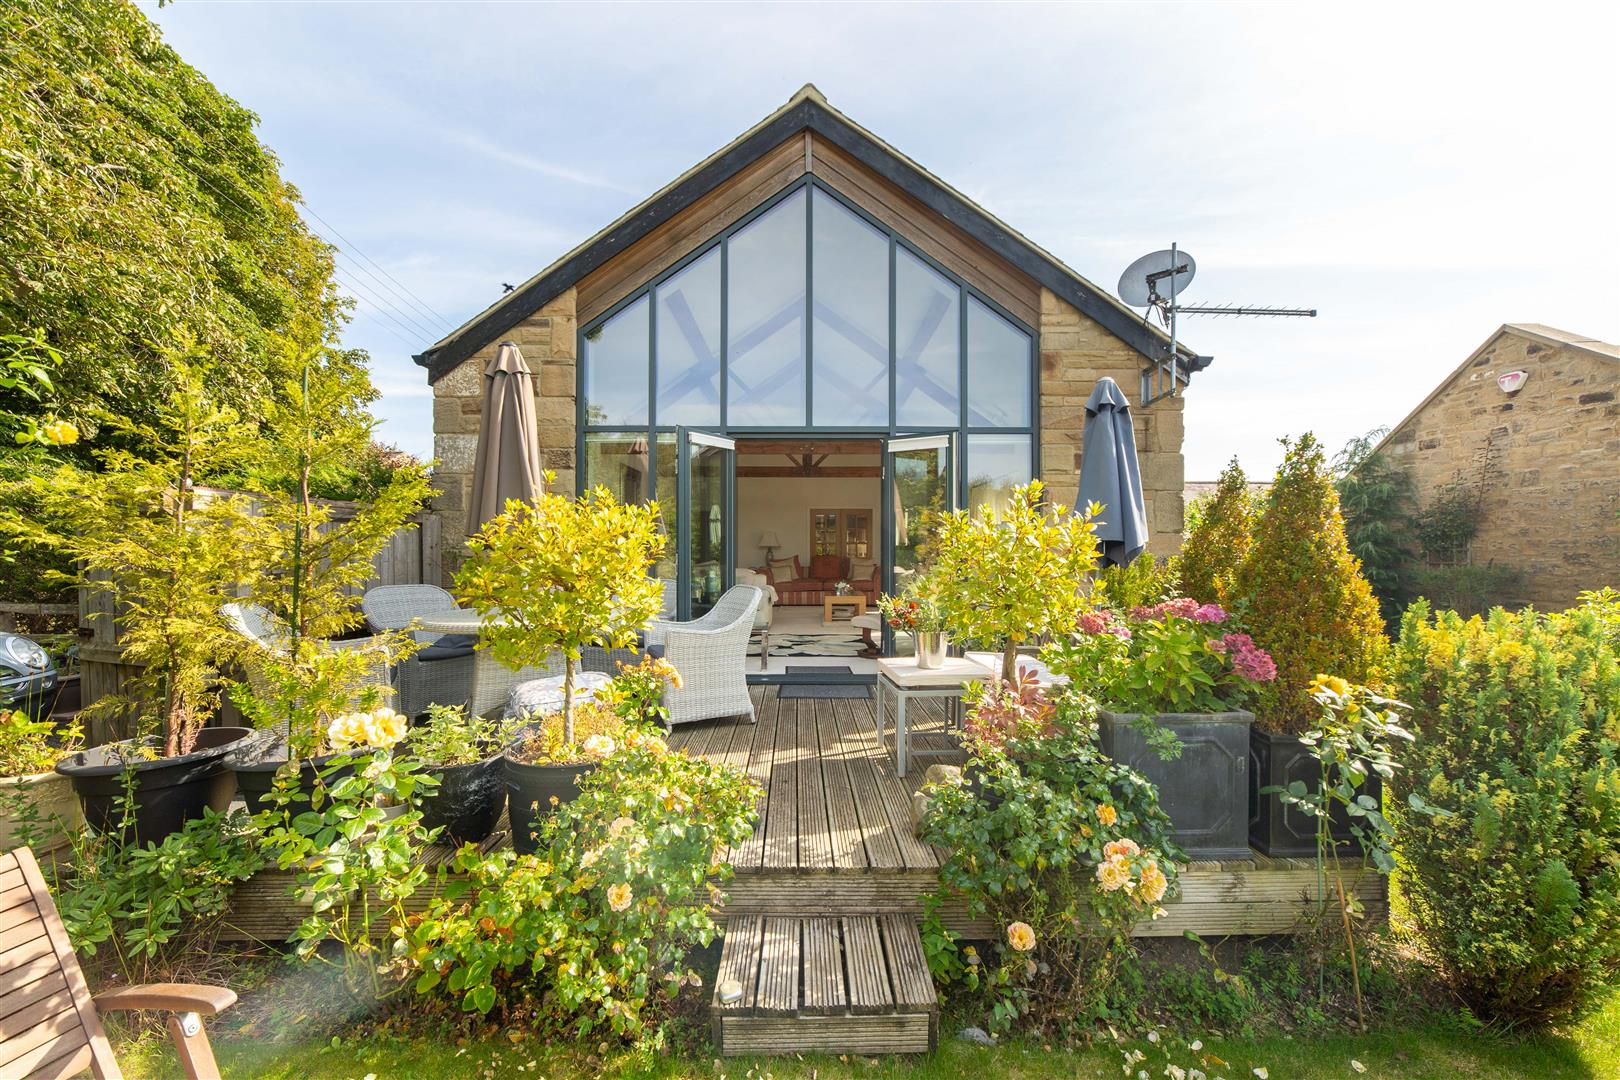 4 bed barn conversion for sale in Newcastle Upon Tyne, NE13 7BR 0